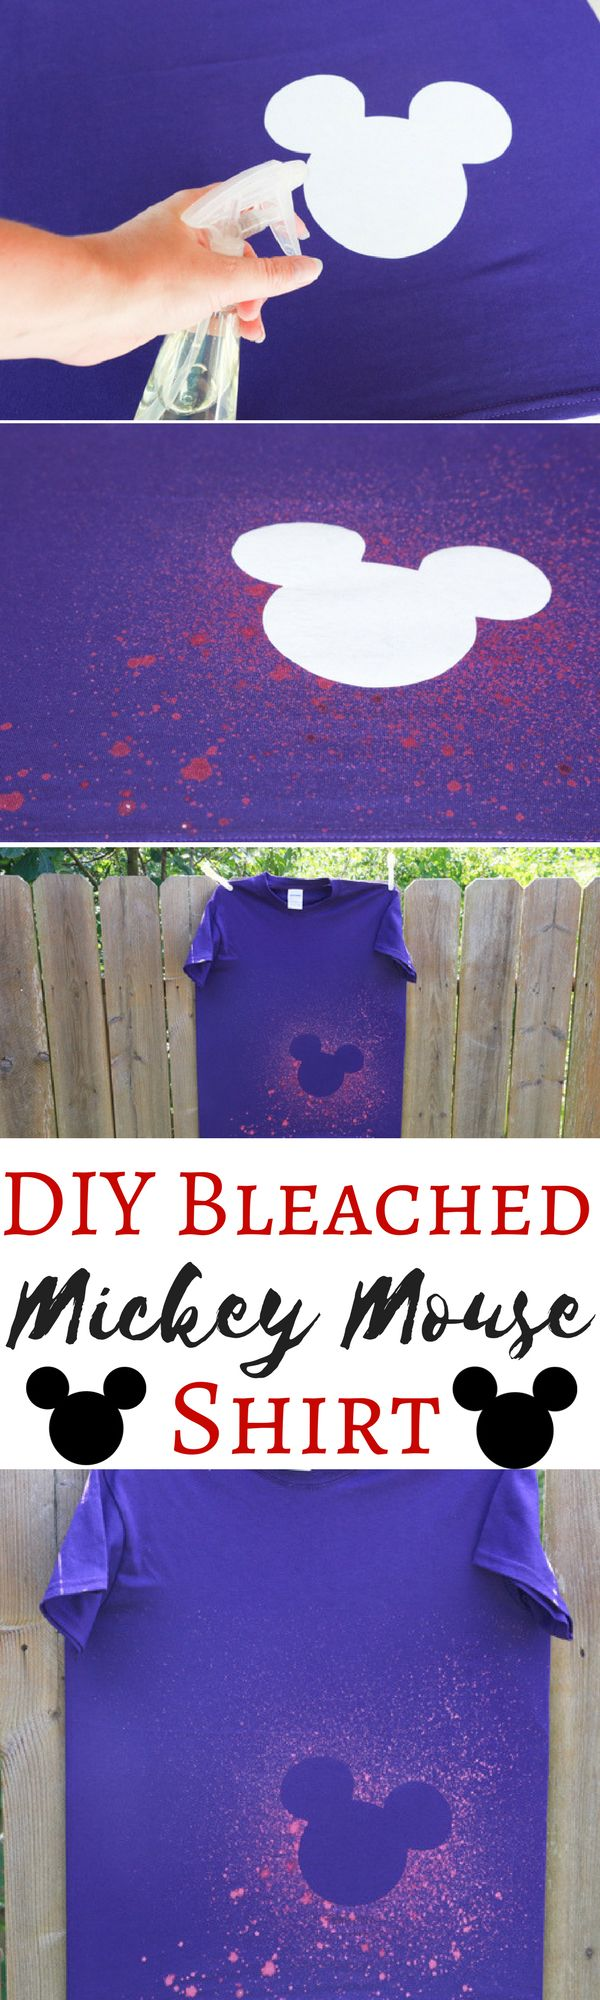 Skip the overpriced shirts at Disney World and make your own before you leave. This DIY Bleached Mickey Mouse shirt turned out great! via @simplymommy